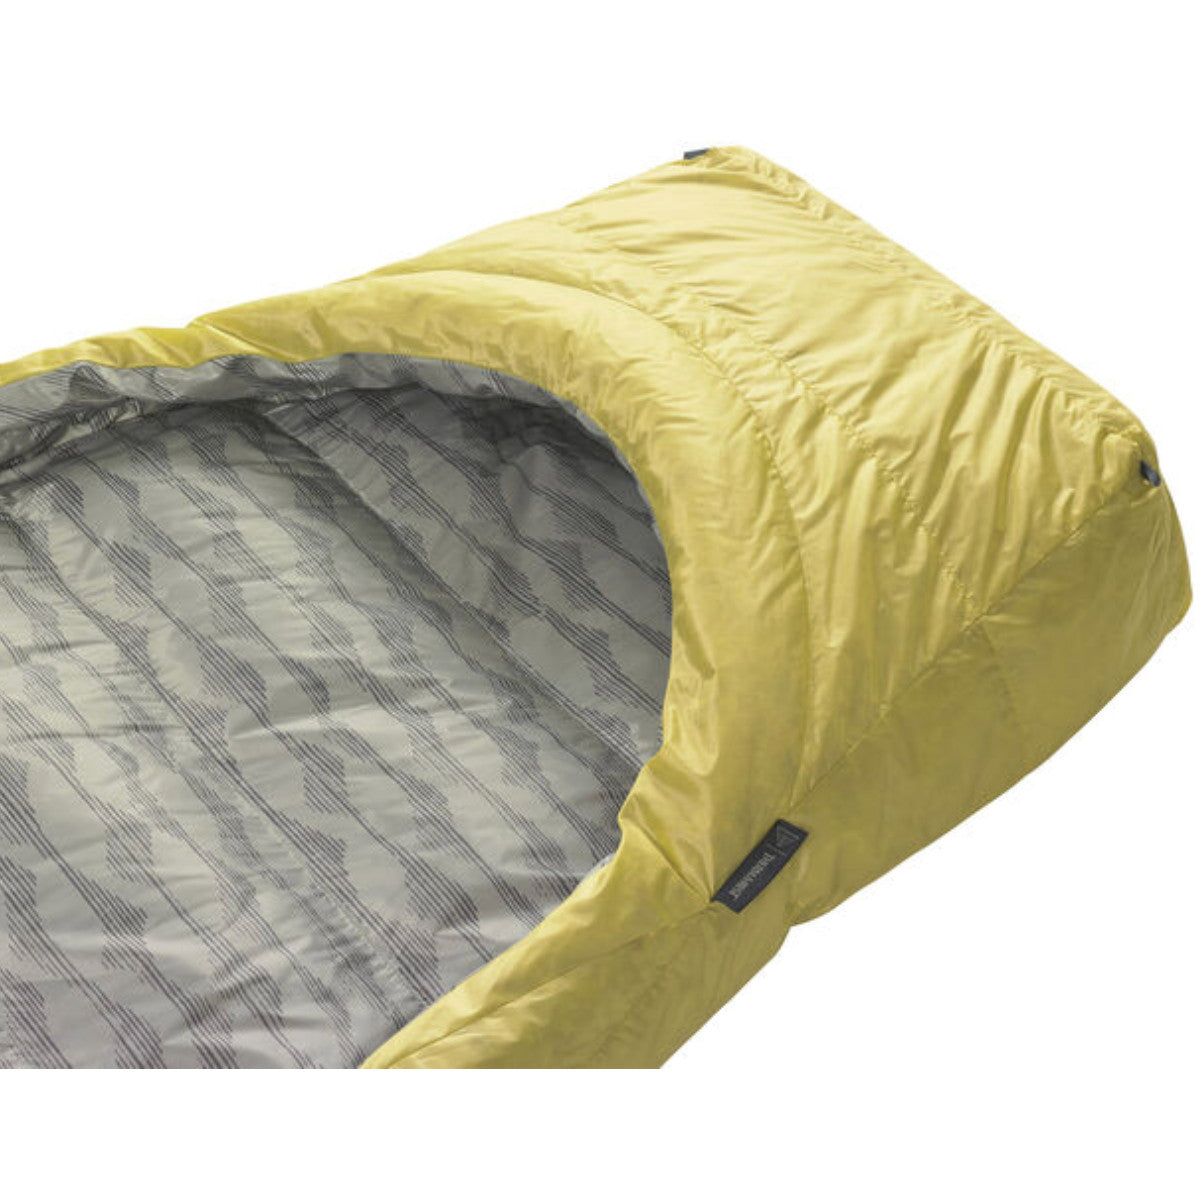 Thermarest Corus 32F/0C Showing foot pocket